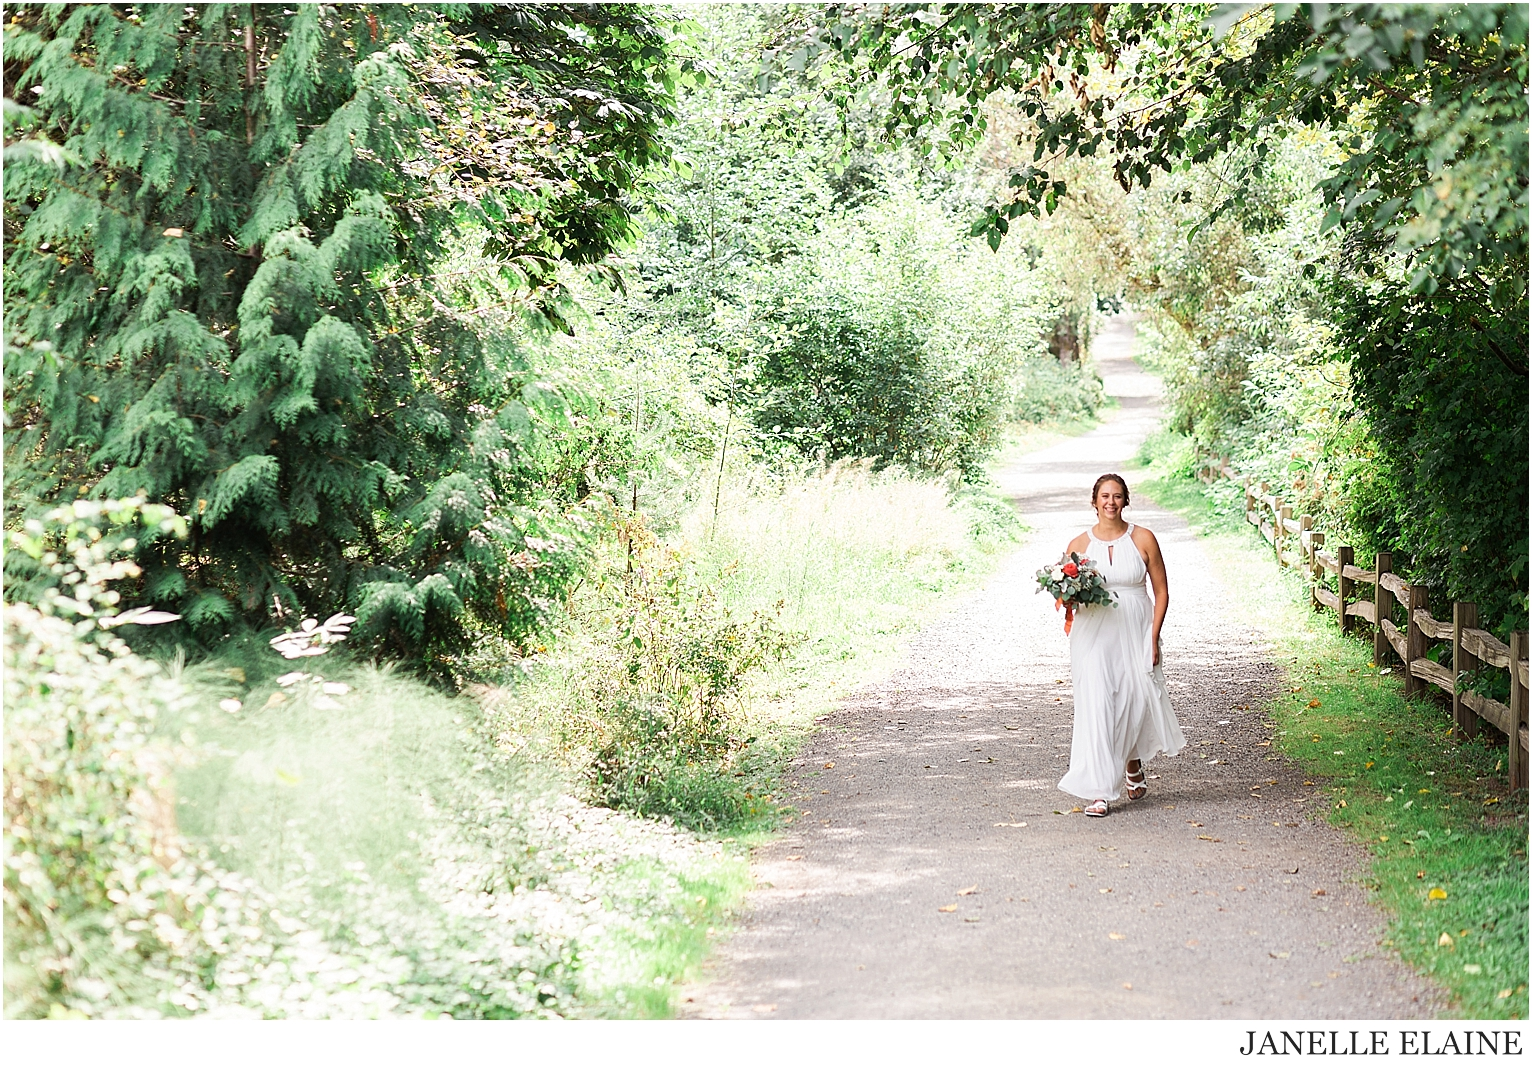 liz and christina lanning-first look and portraits-luther burbank park-janelle elaine photography-10.jpg